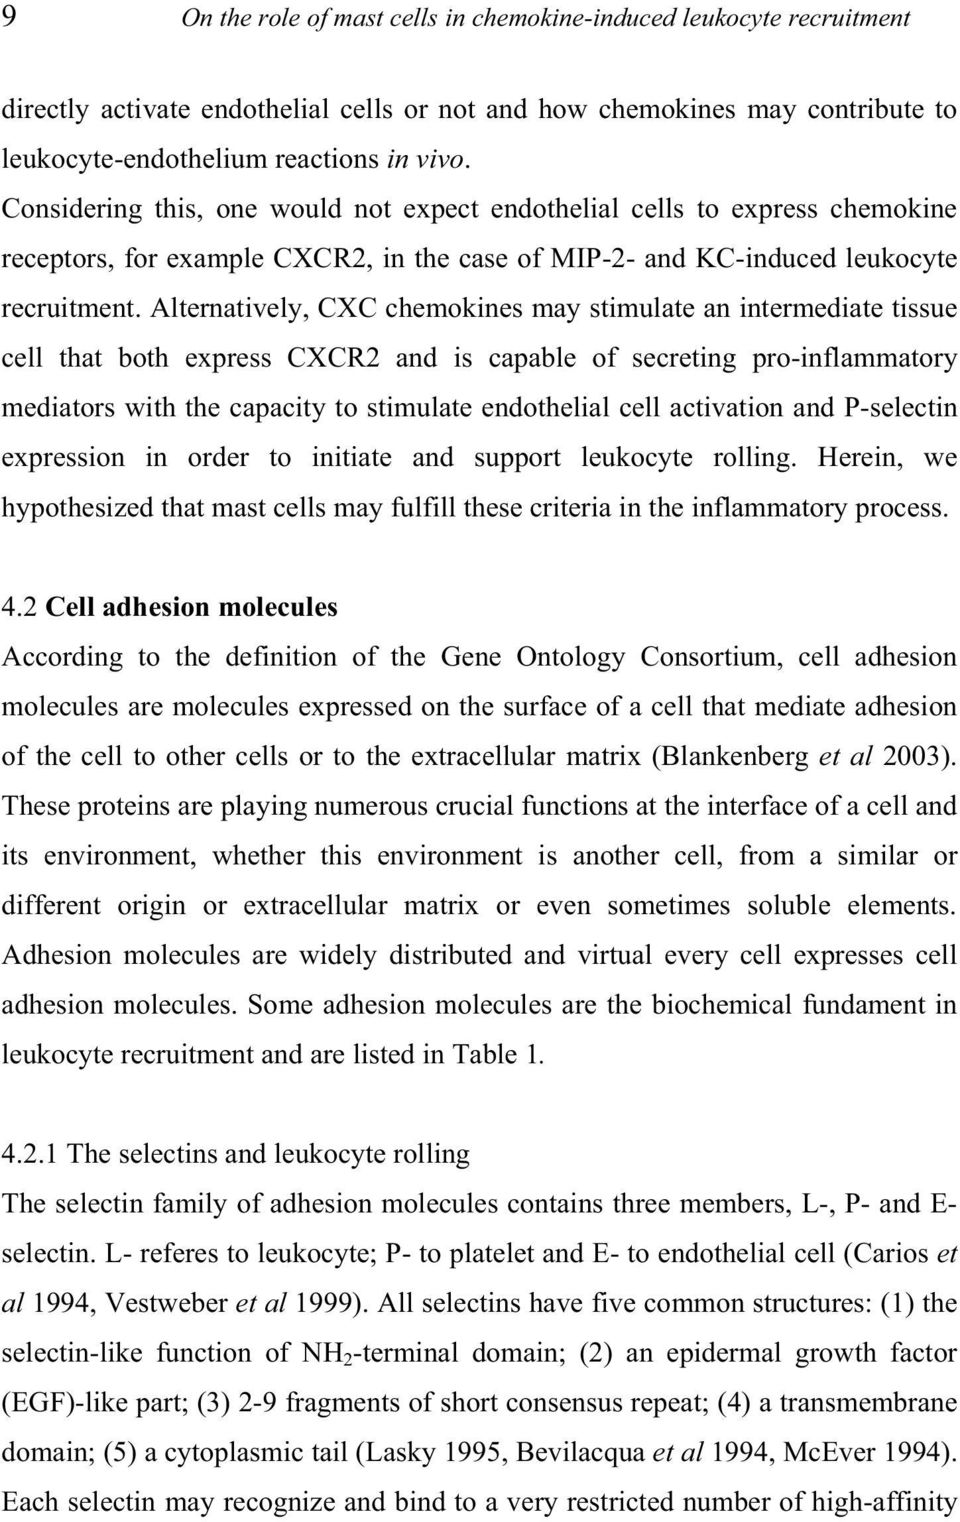 Alternatively, CXC chemokines may stimulate an intermediate tissue cell that both express CXCR2 and is capable of secreting pro-inflammatory mediators with the capacity to stimulate endothelial cell